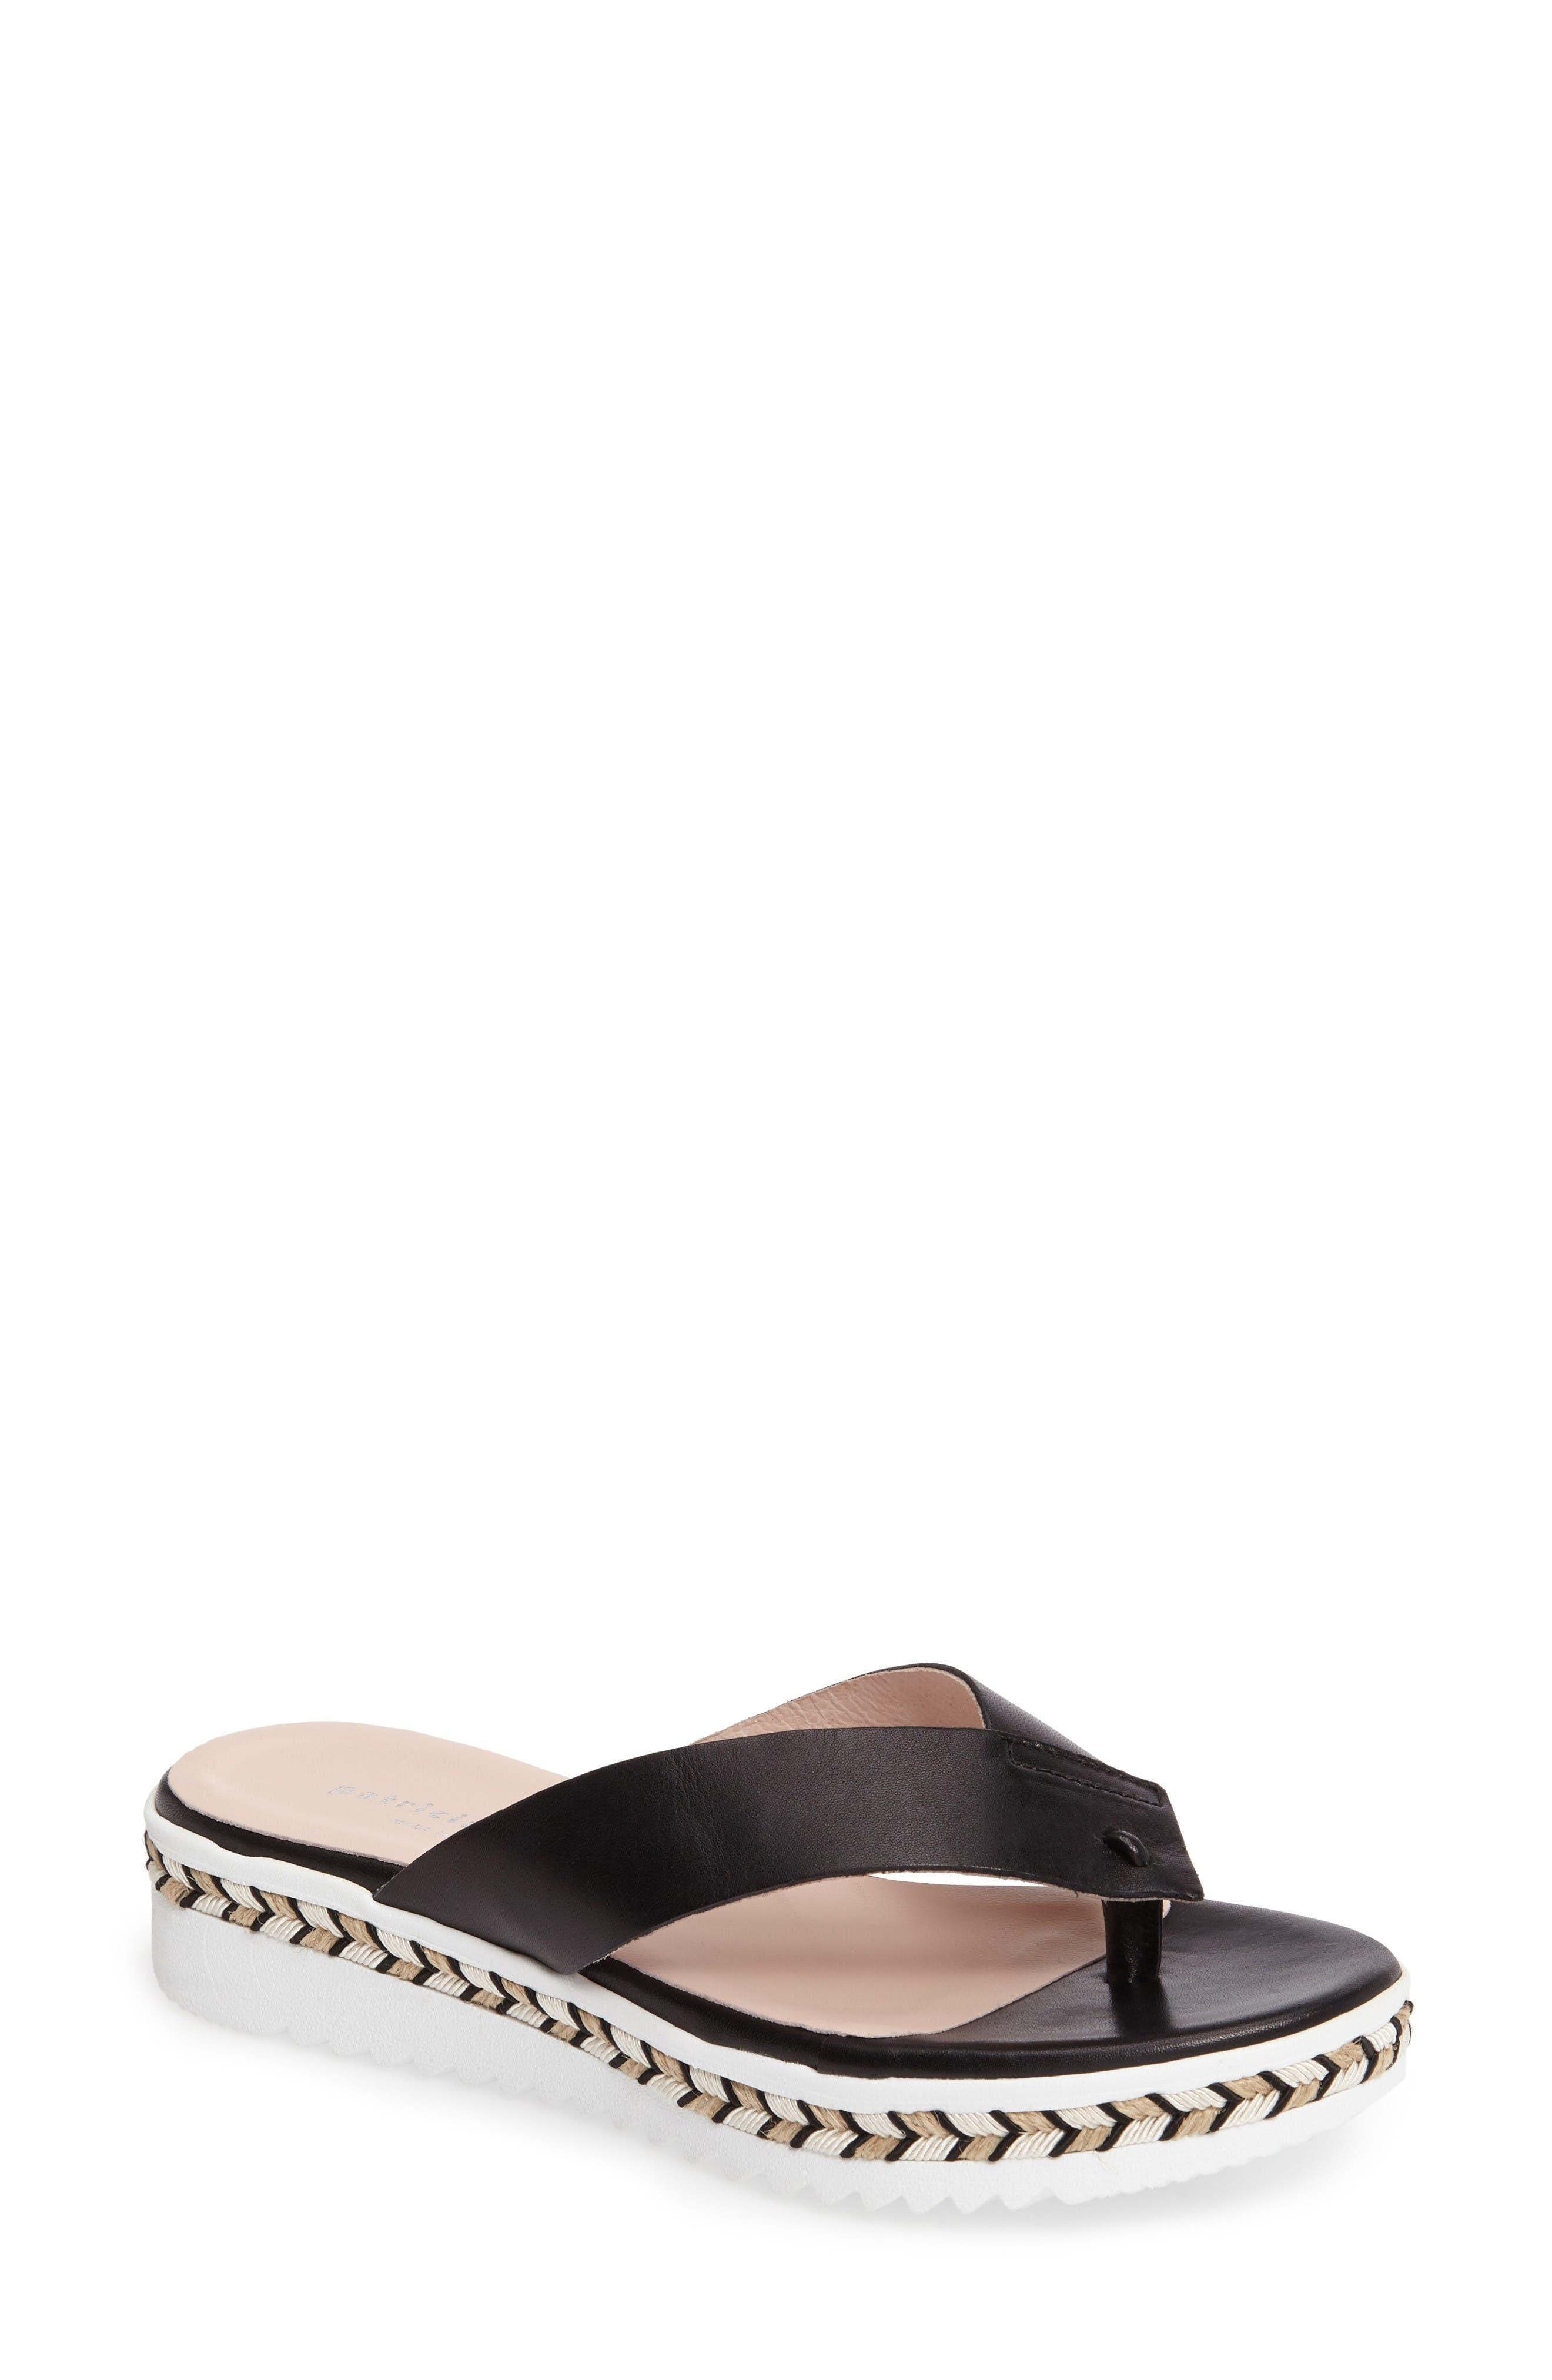 Brooklyn Wedge Flip Flop,                             Main thumbnail 1, color,                             Black Leather